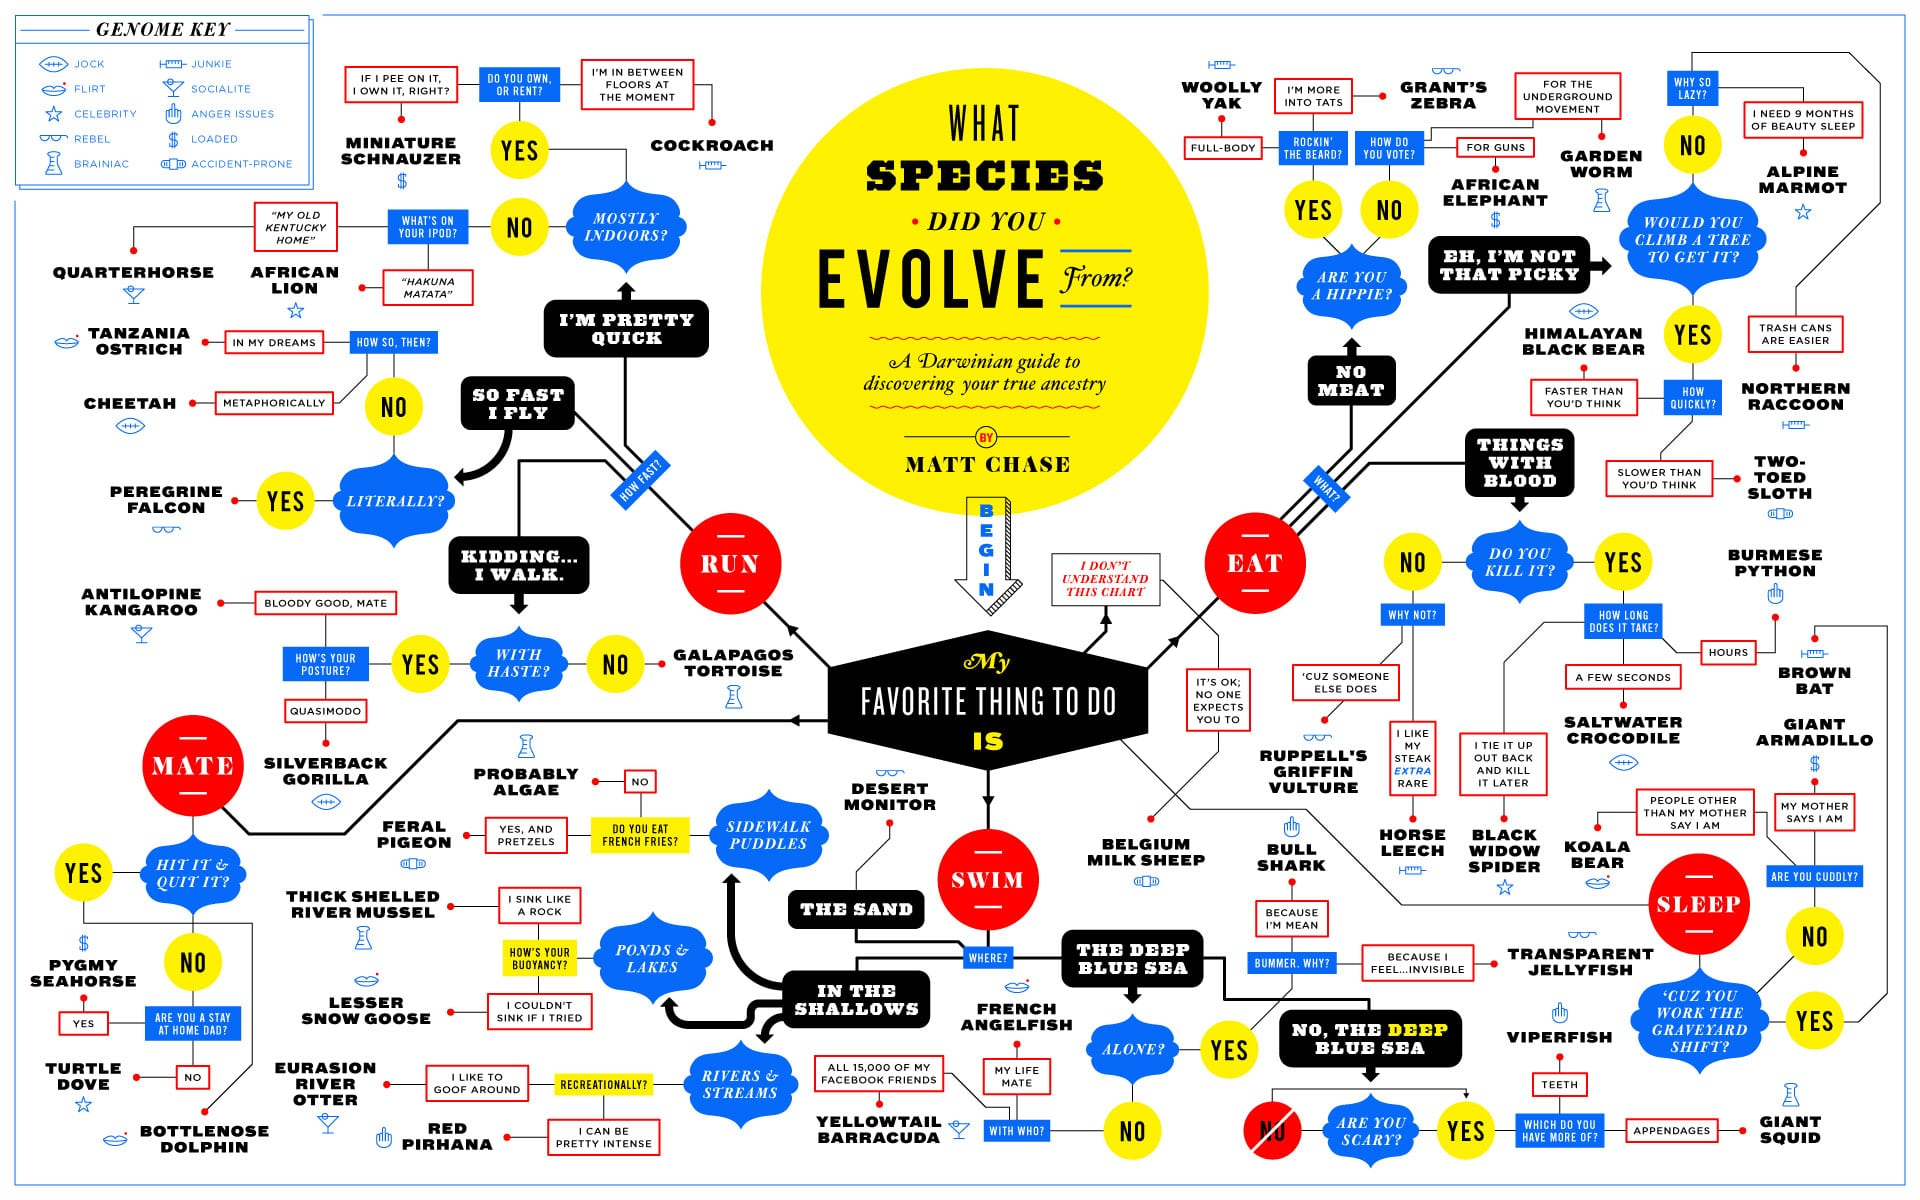 Discover Your Ancestry: What Species Did You Evolve From? [Flowchart]